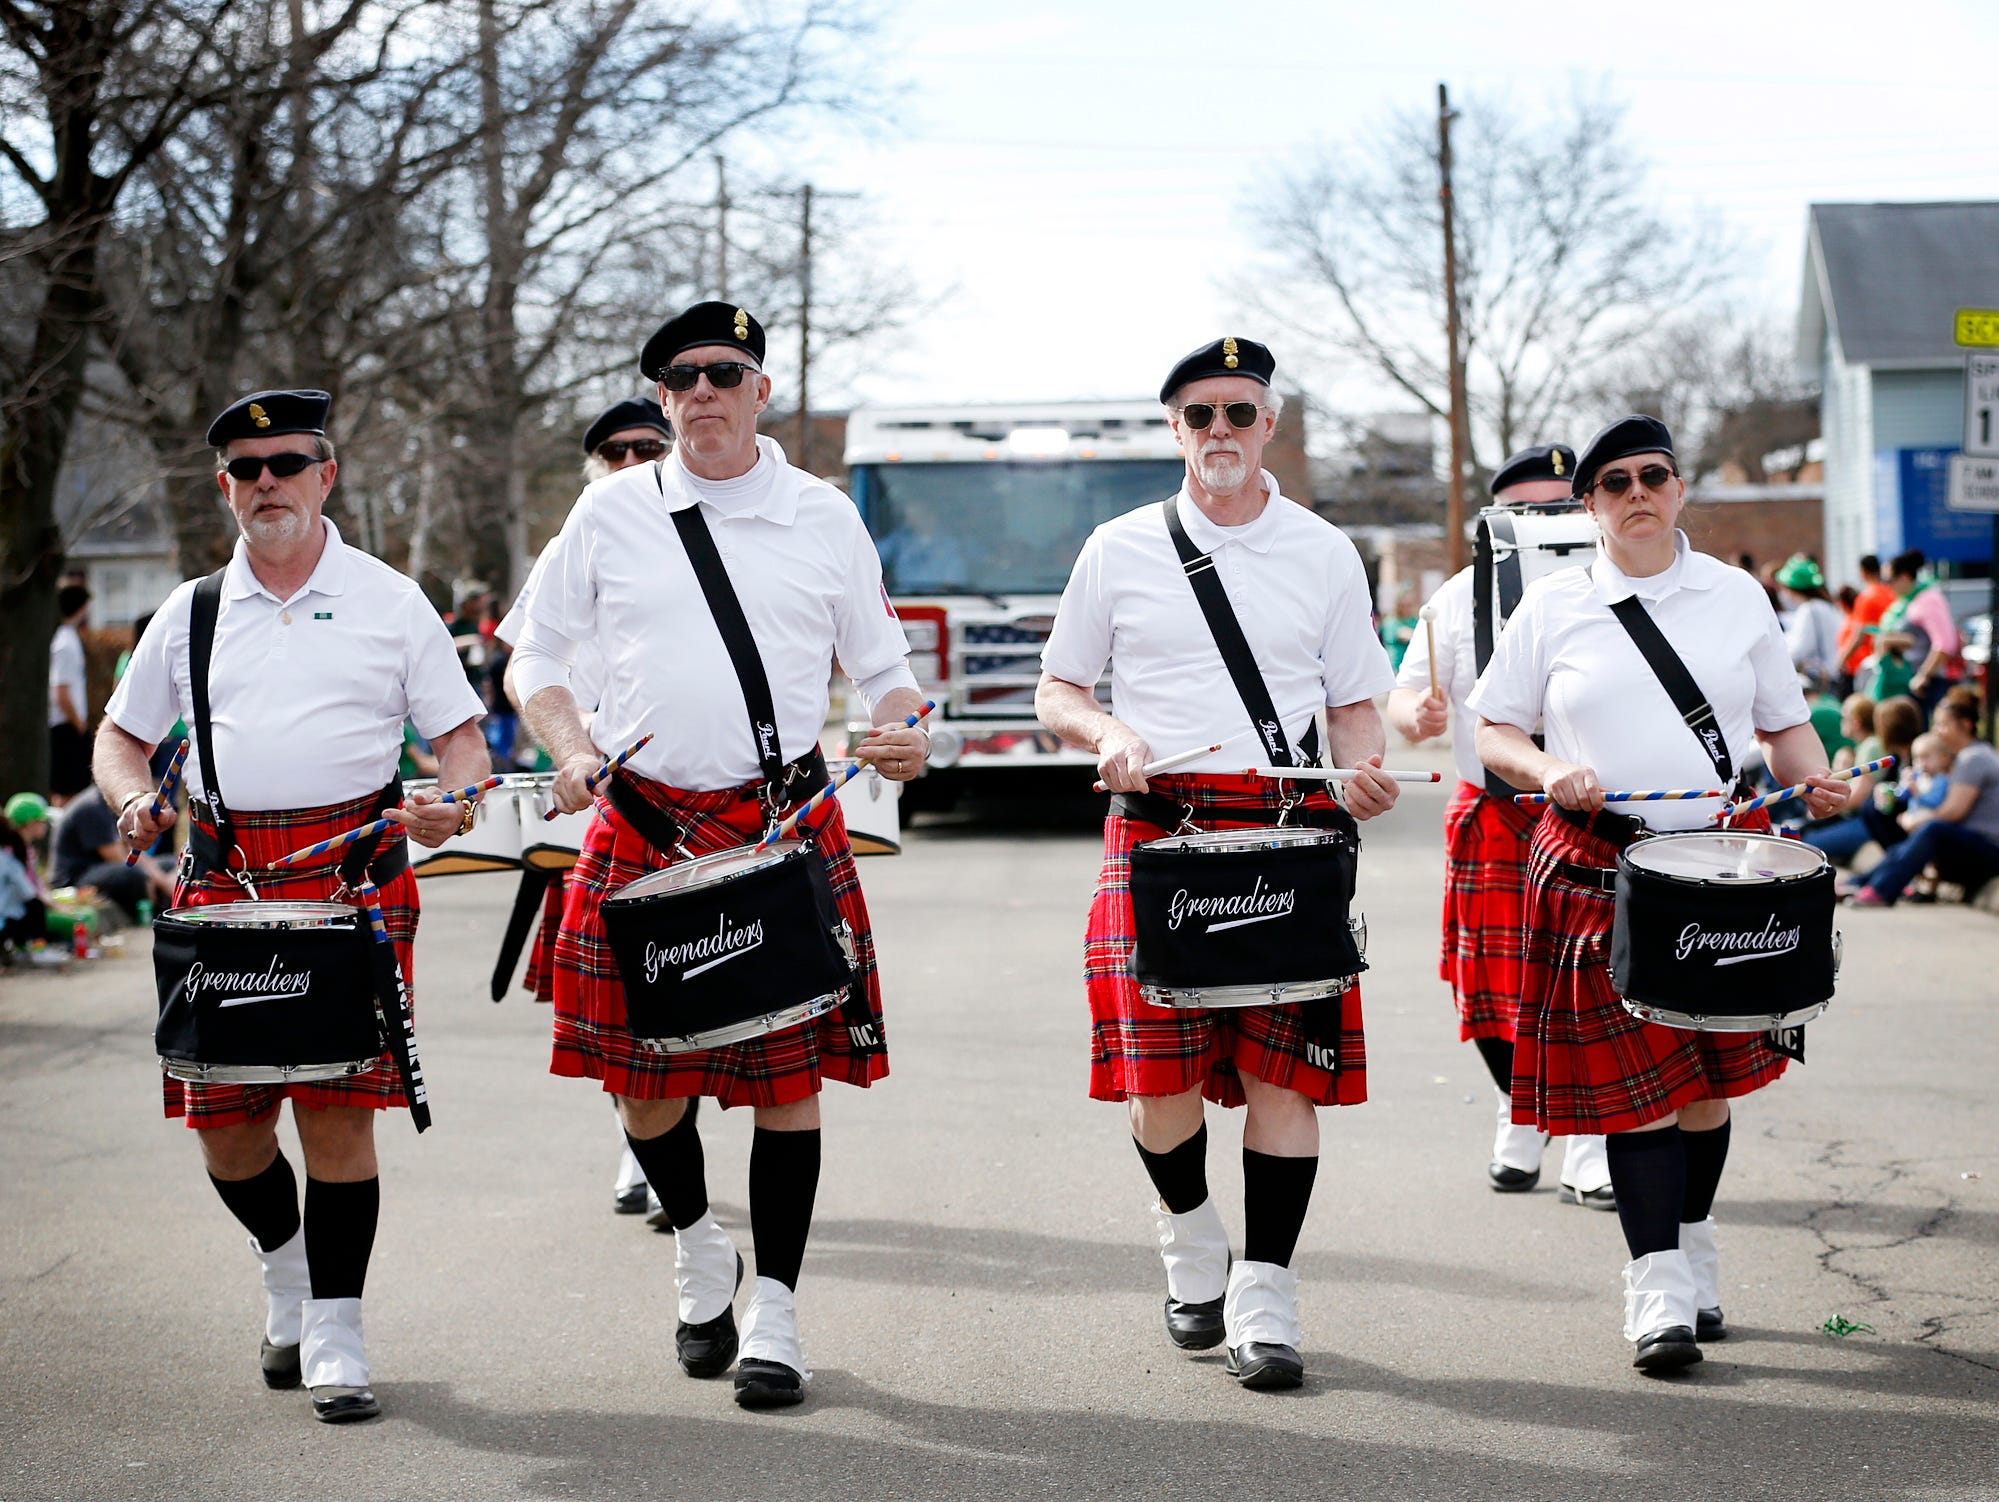 2016: The Grenadiers Alumni Drum Line march down Sayre Street while rattling off a cadence Saturday at the Horseheads St. Patrick's Day Parade.